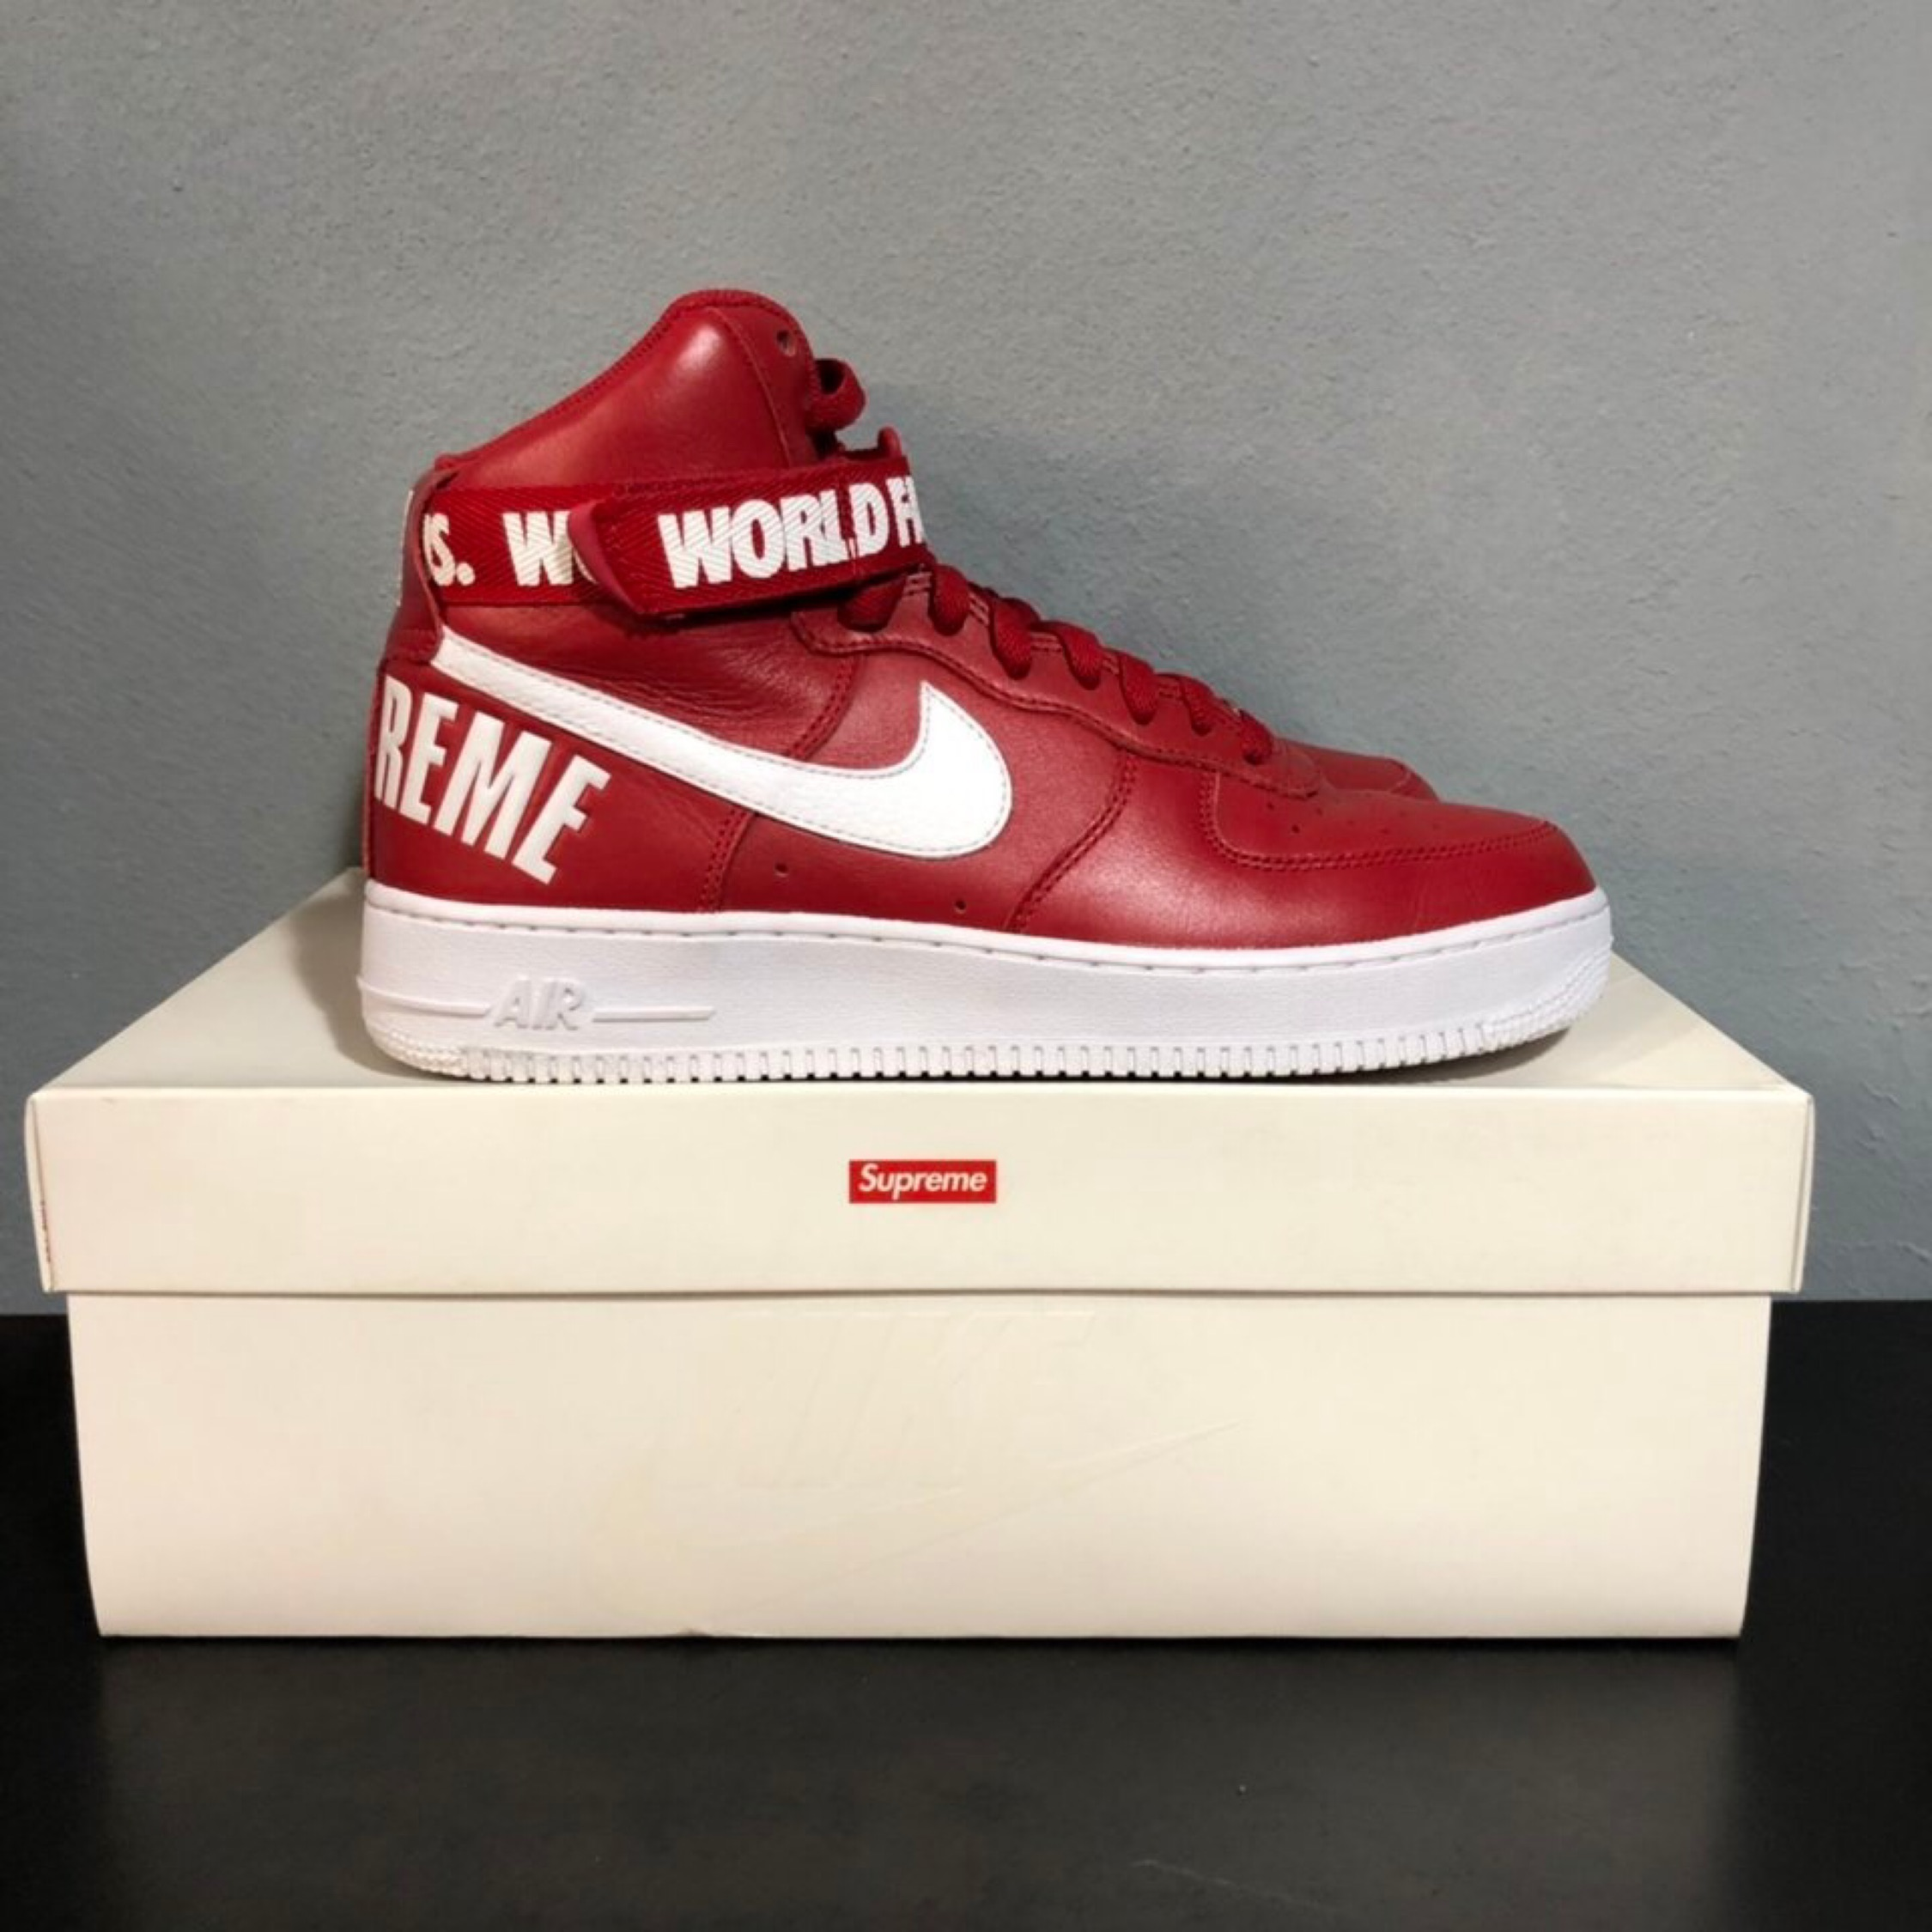 Nike Af1 High X Supreme  World Famous 2012 Red